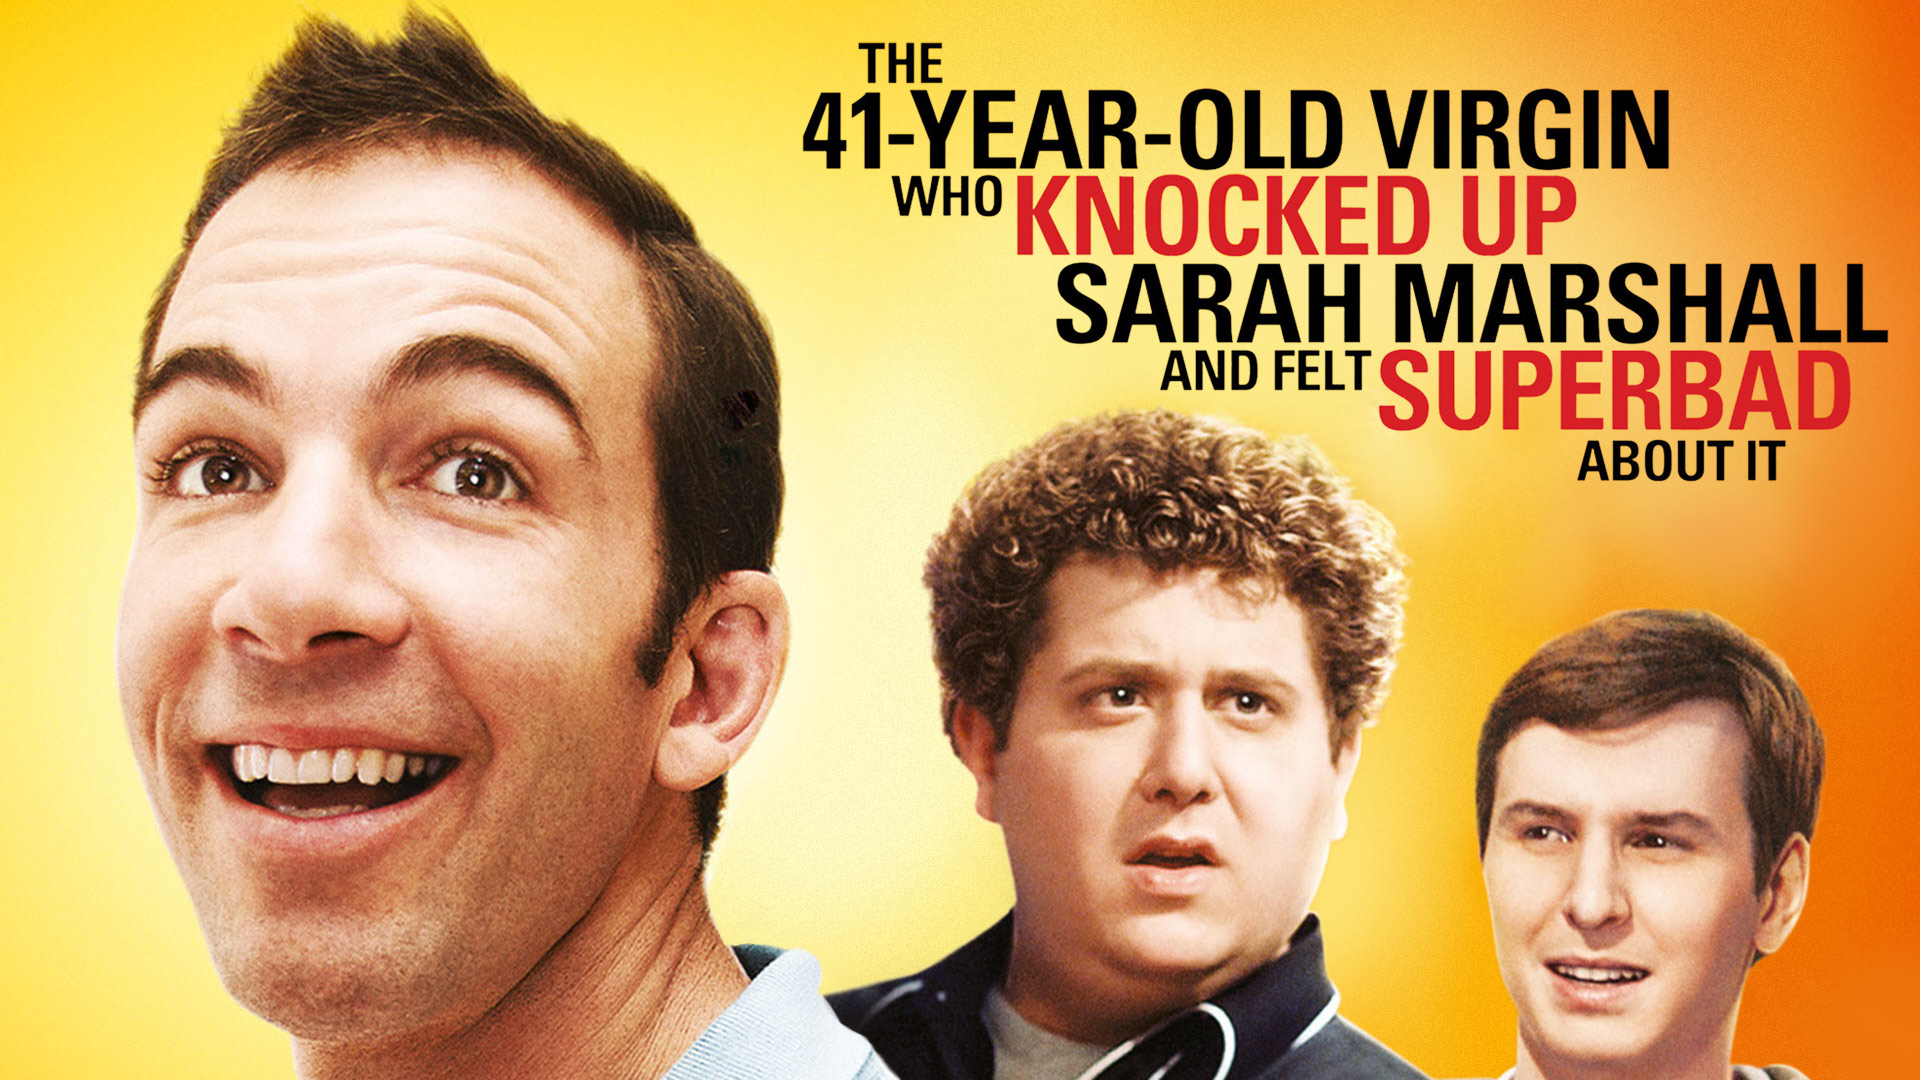 The 41 Year Old Virgin That Knocked Up Sarah Marshall And Felt Superbad About It